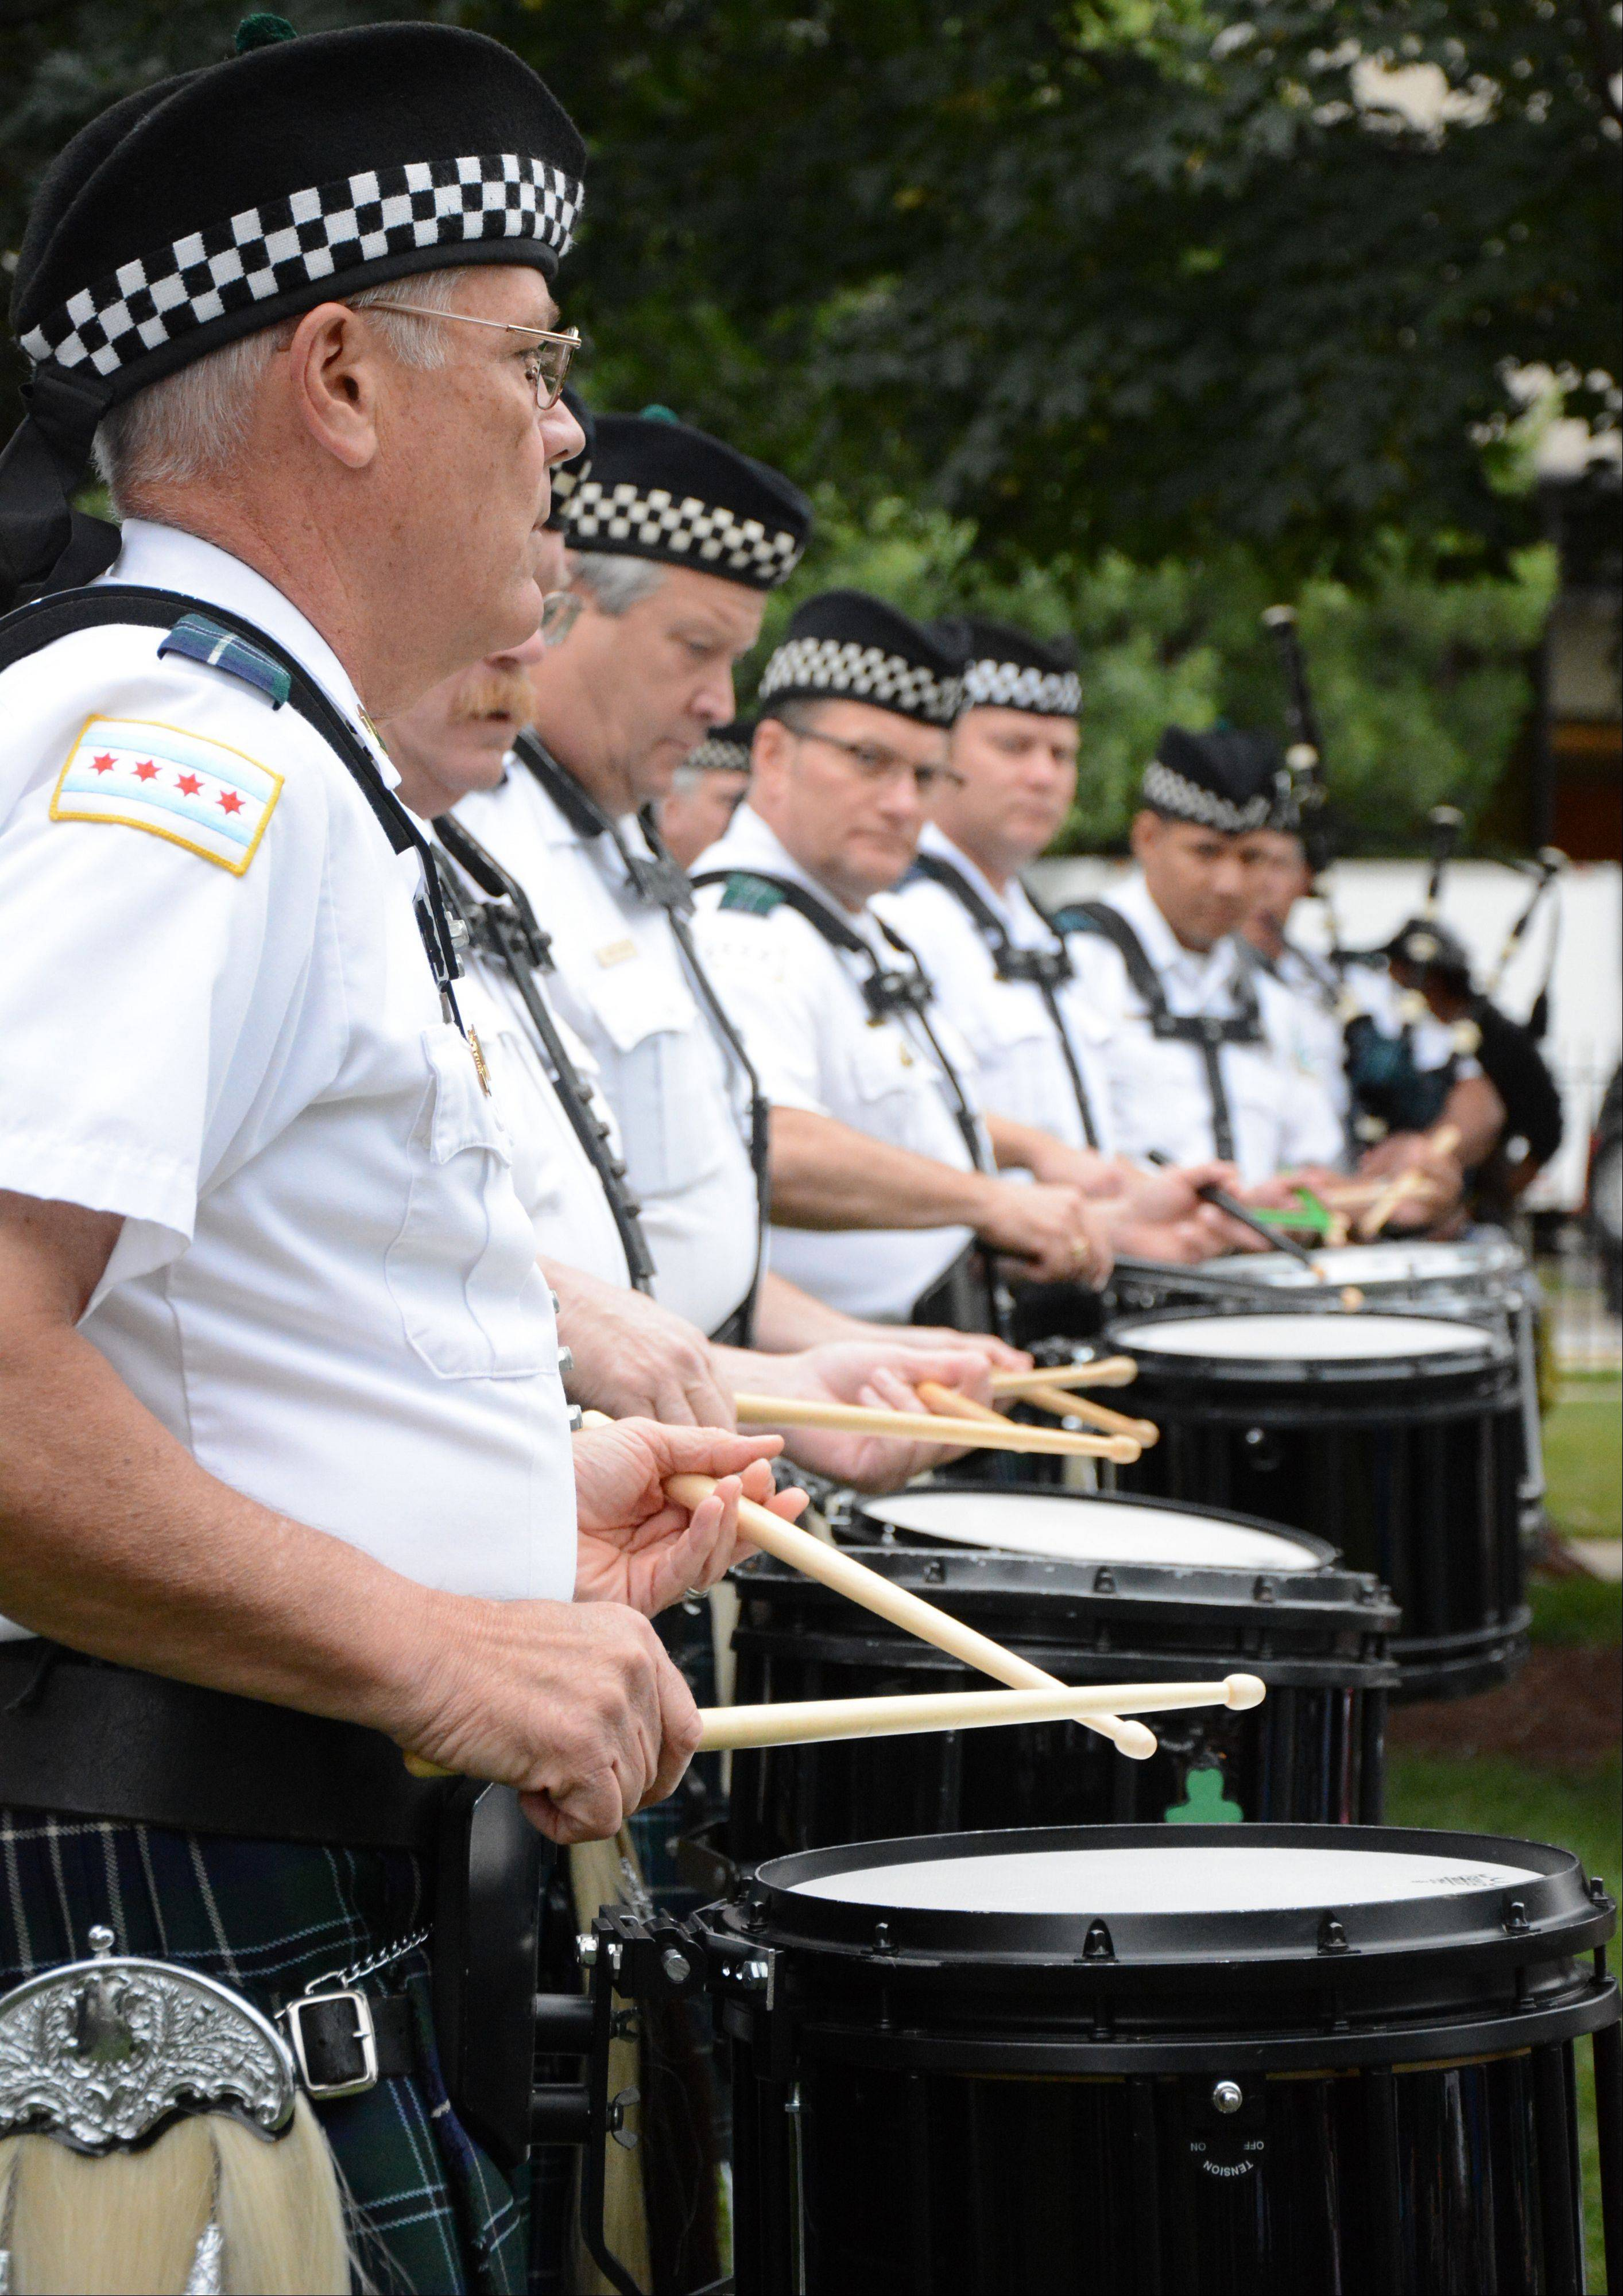 Dave Dvorak/ddvorak@dailyherald.comThe Chicago Police Pipes and Drums band perform at the Arlington Heights Irish Fest Saturday, July 27.